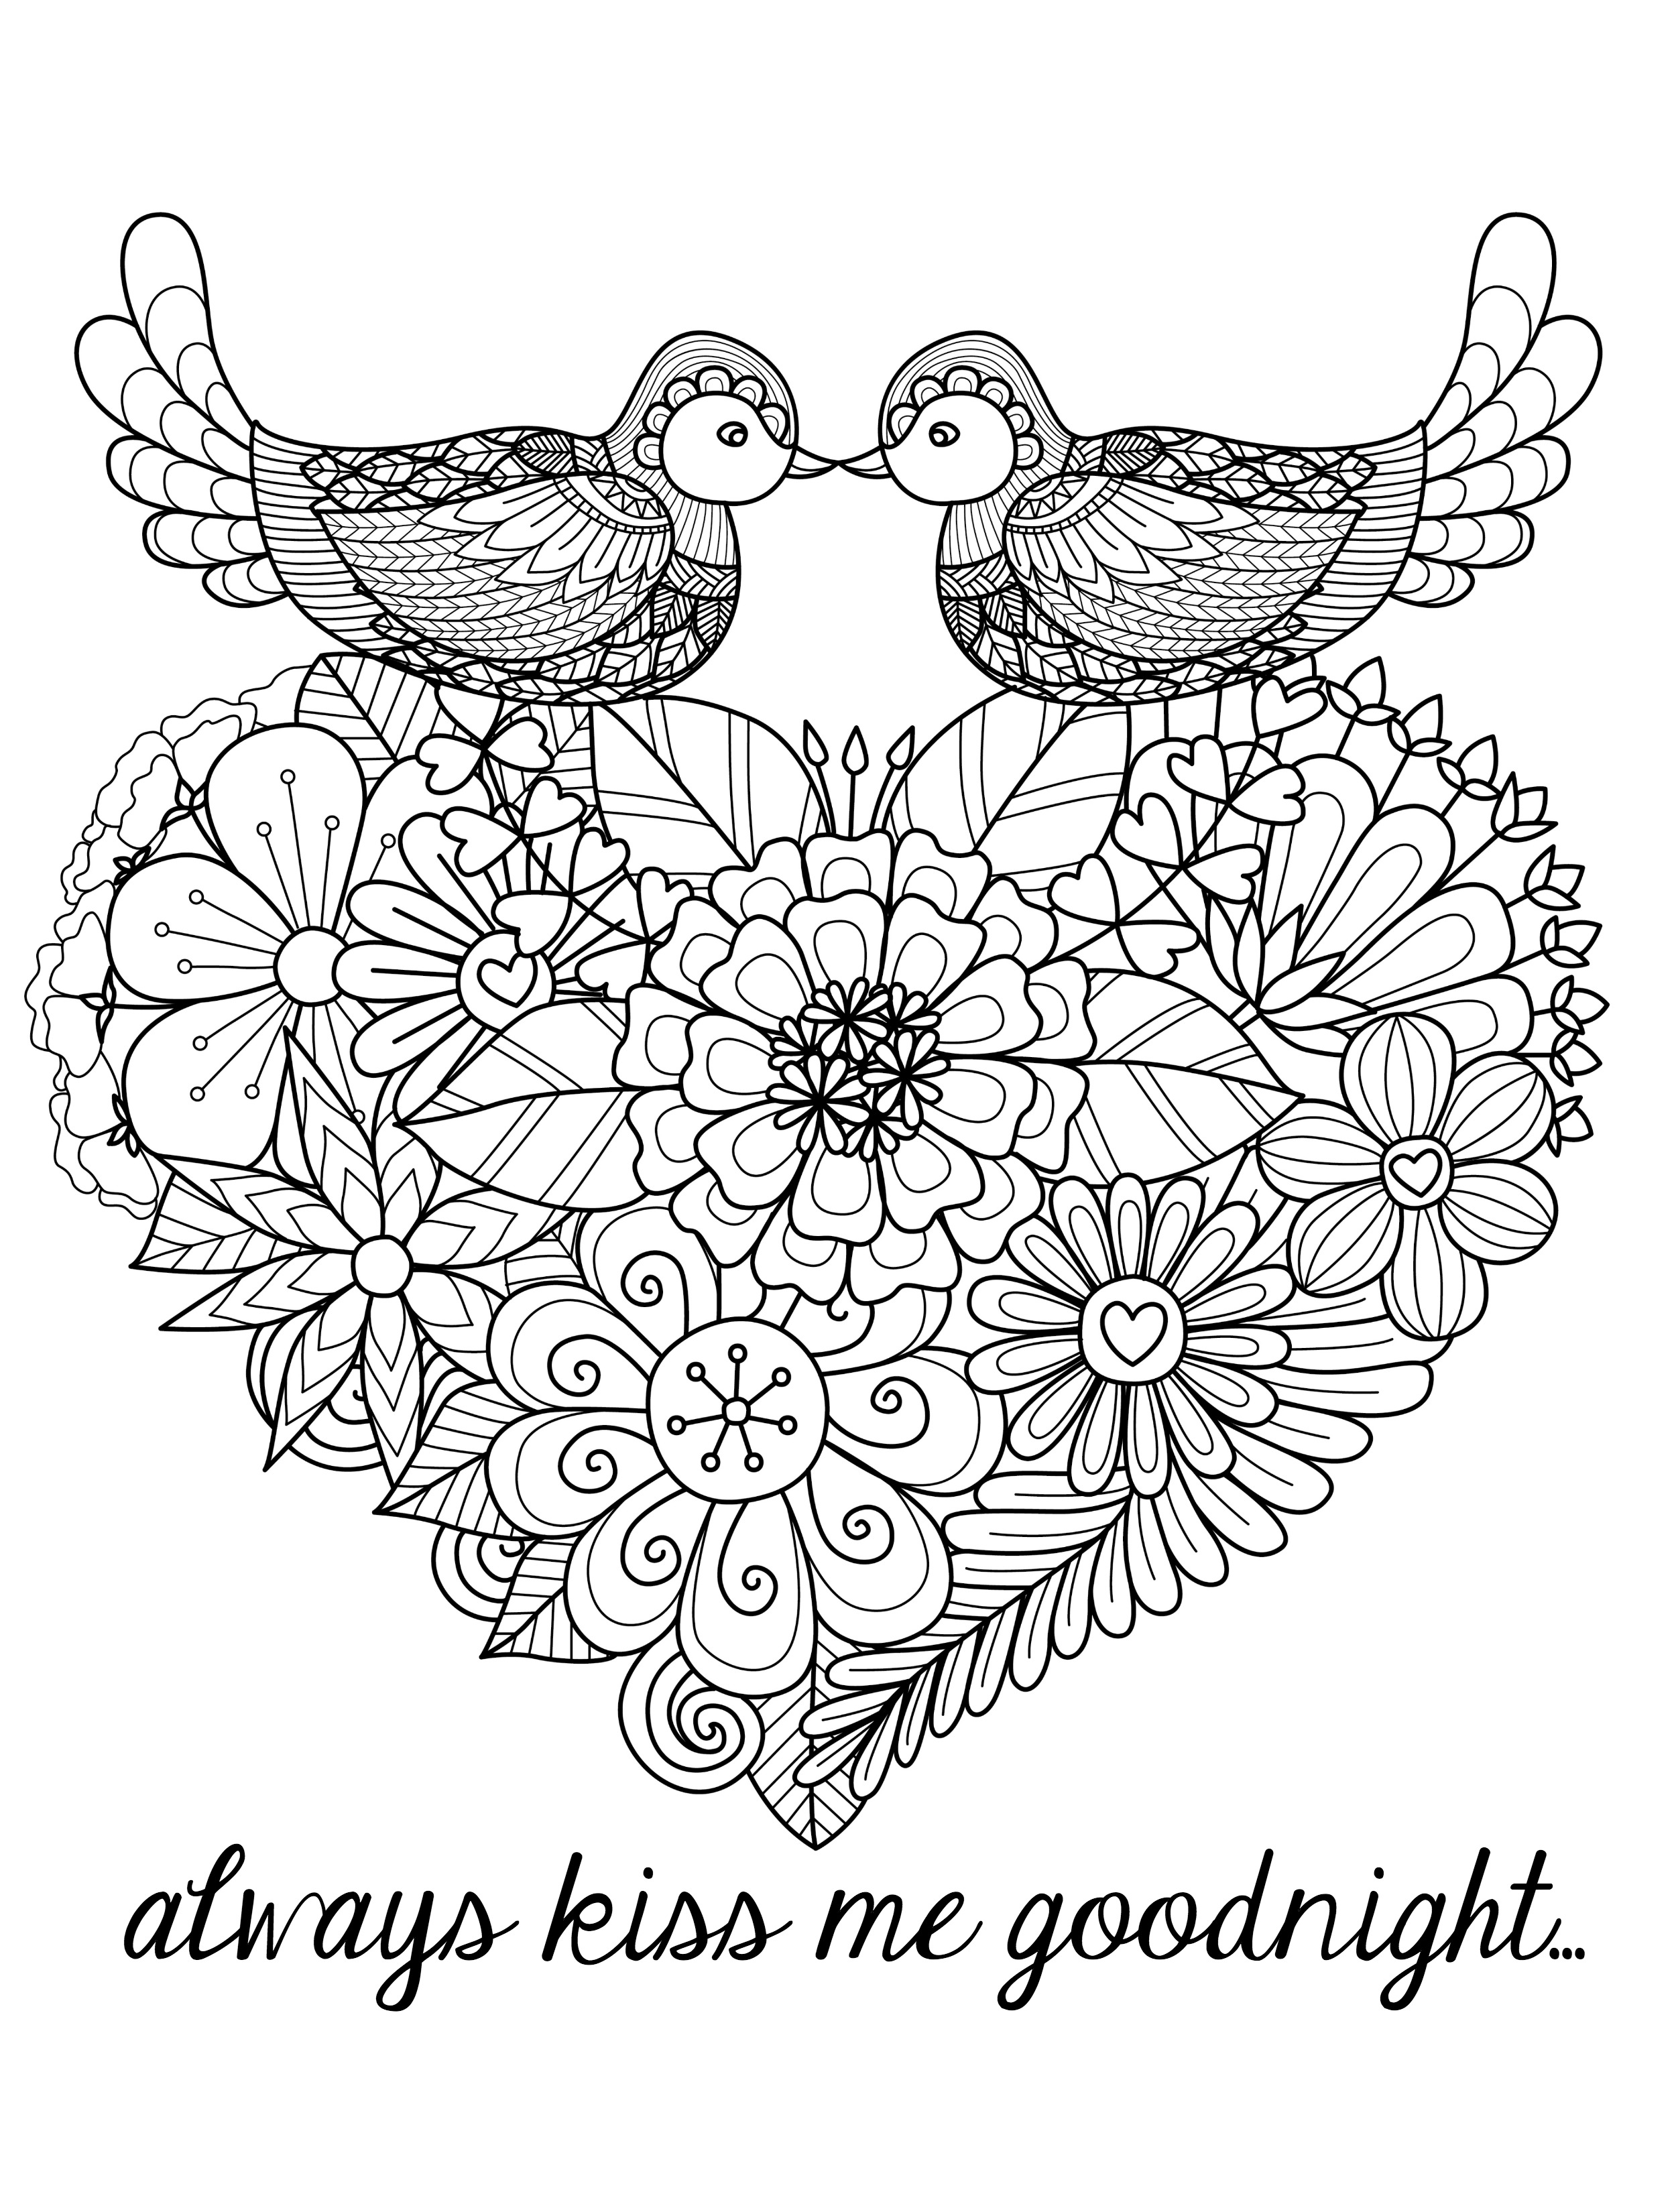 printable pictures to color for adults detailed coloring pages to download and print for free printable adults pictures for to color